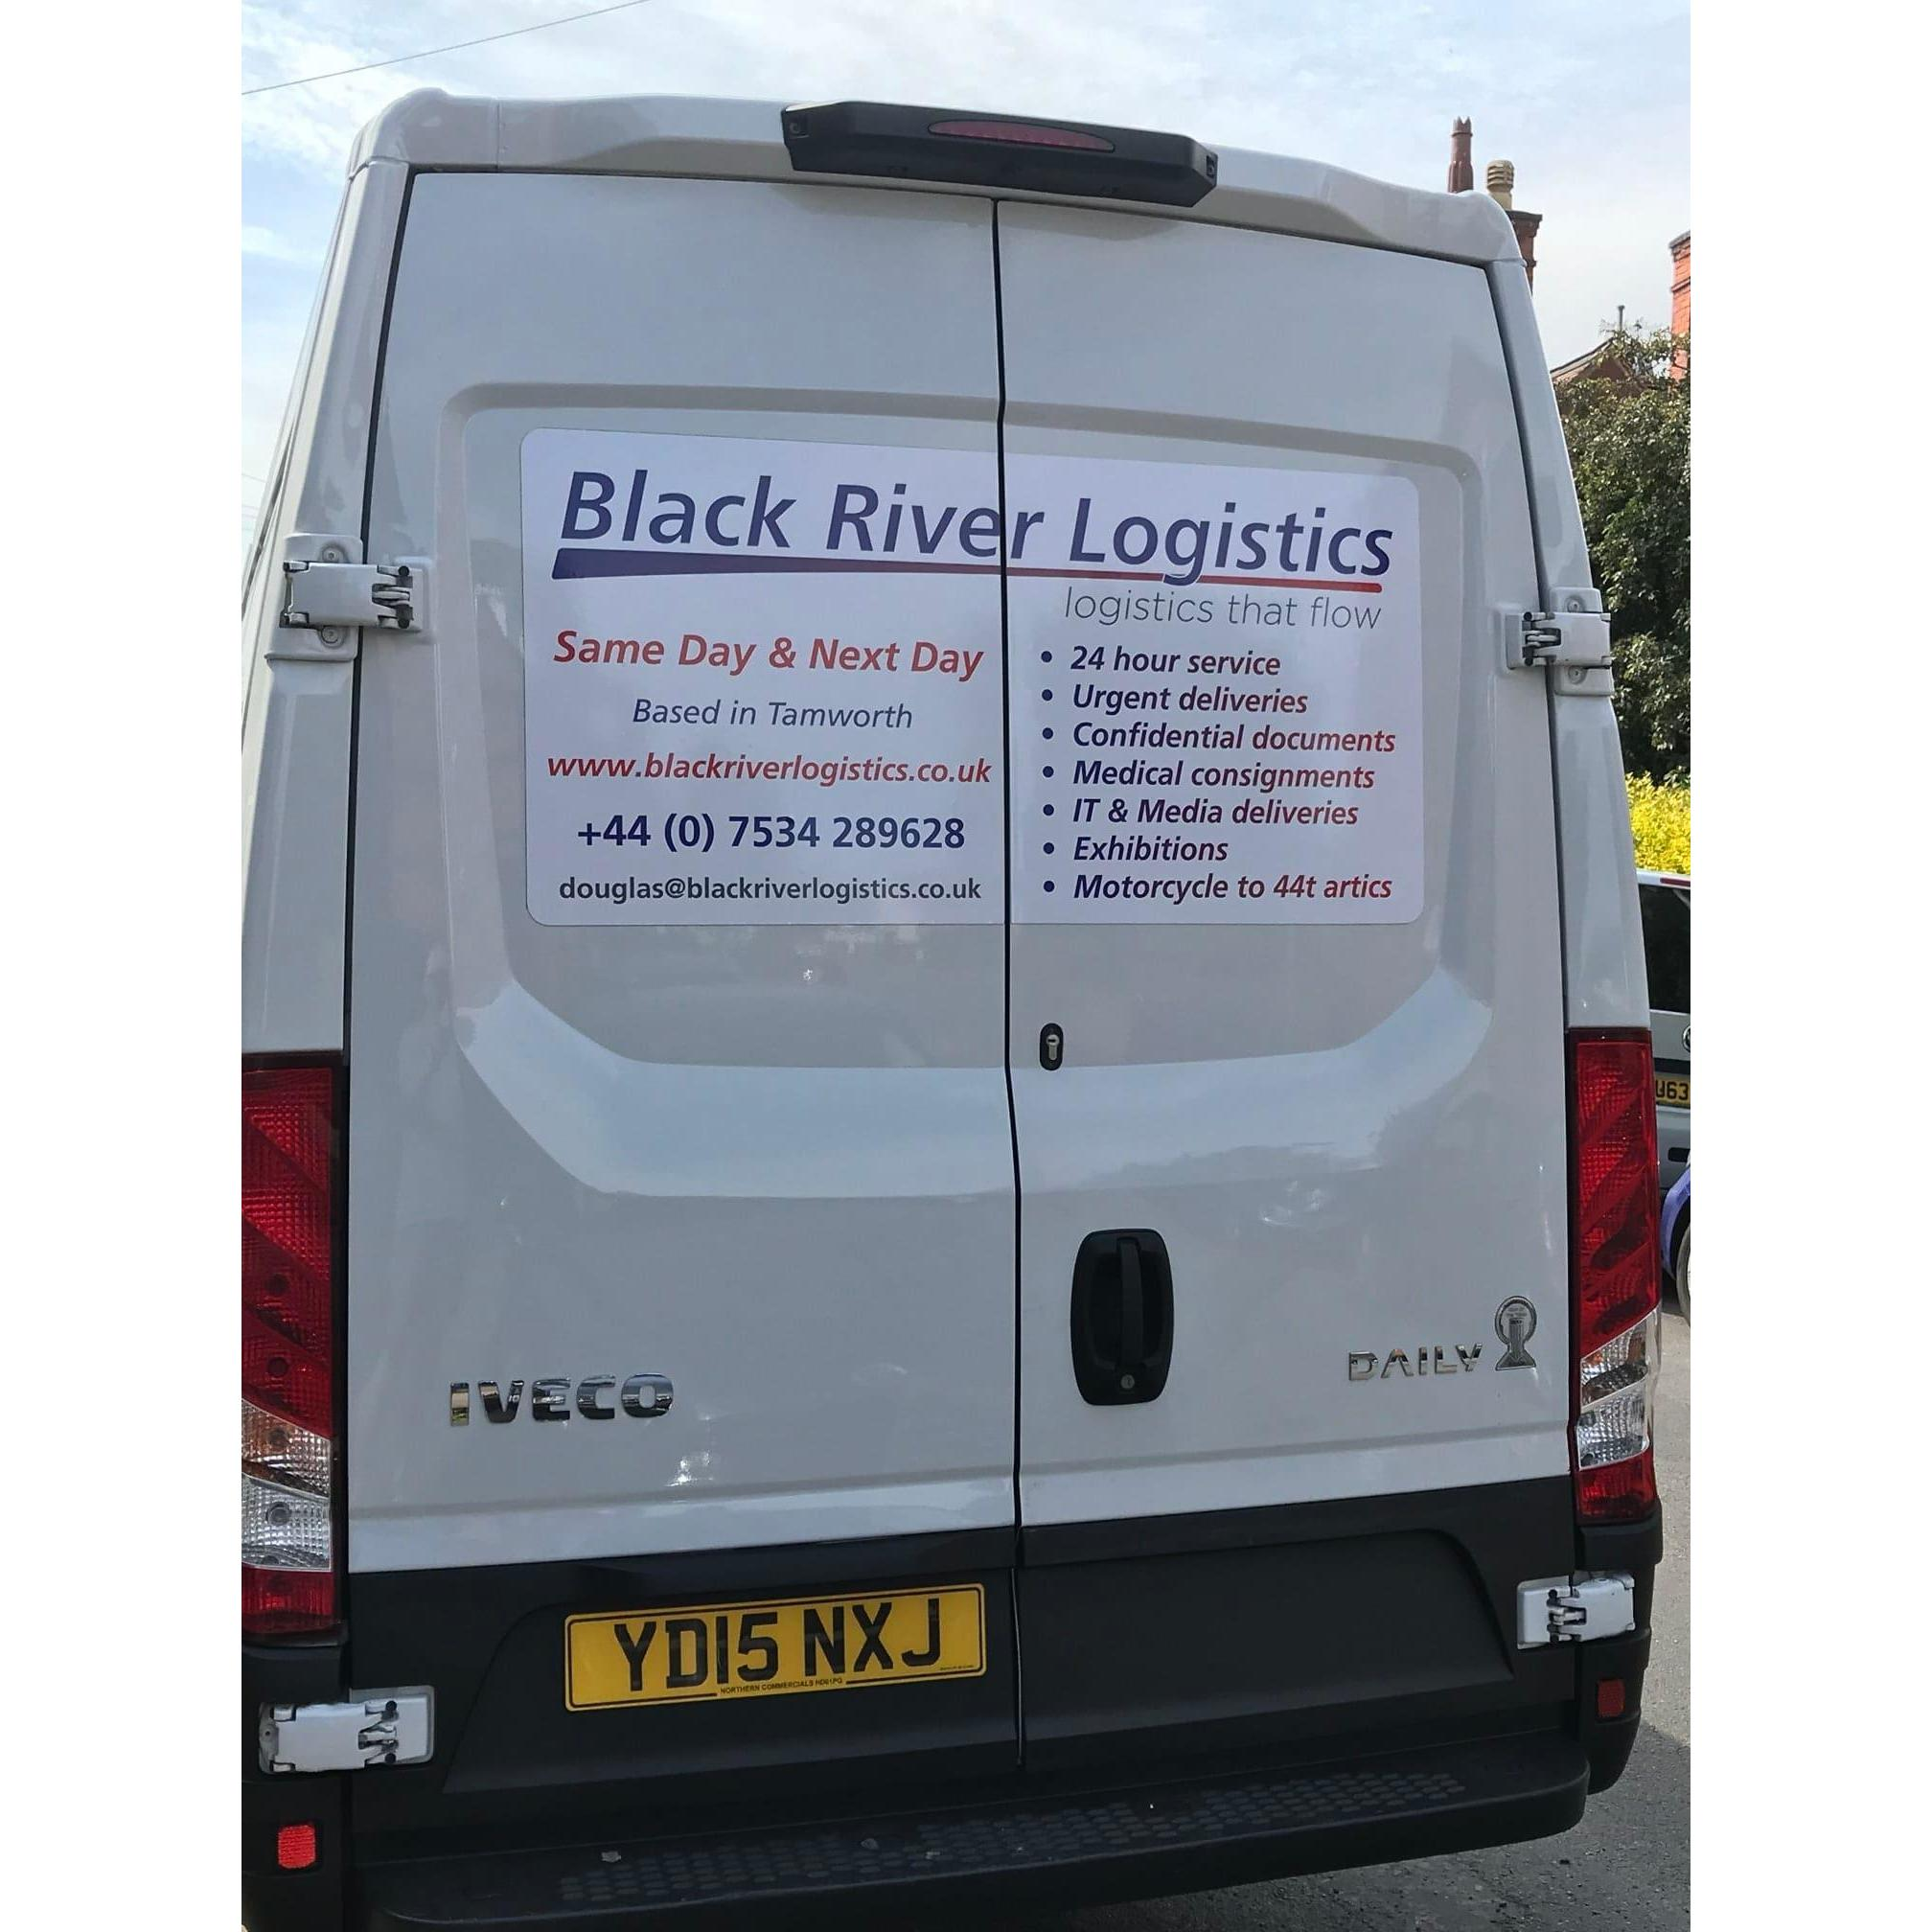 Black River Logistics - Tamworth, Staffordshire B79 7EE - 07534 289628 | ShowMeLocal.com